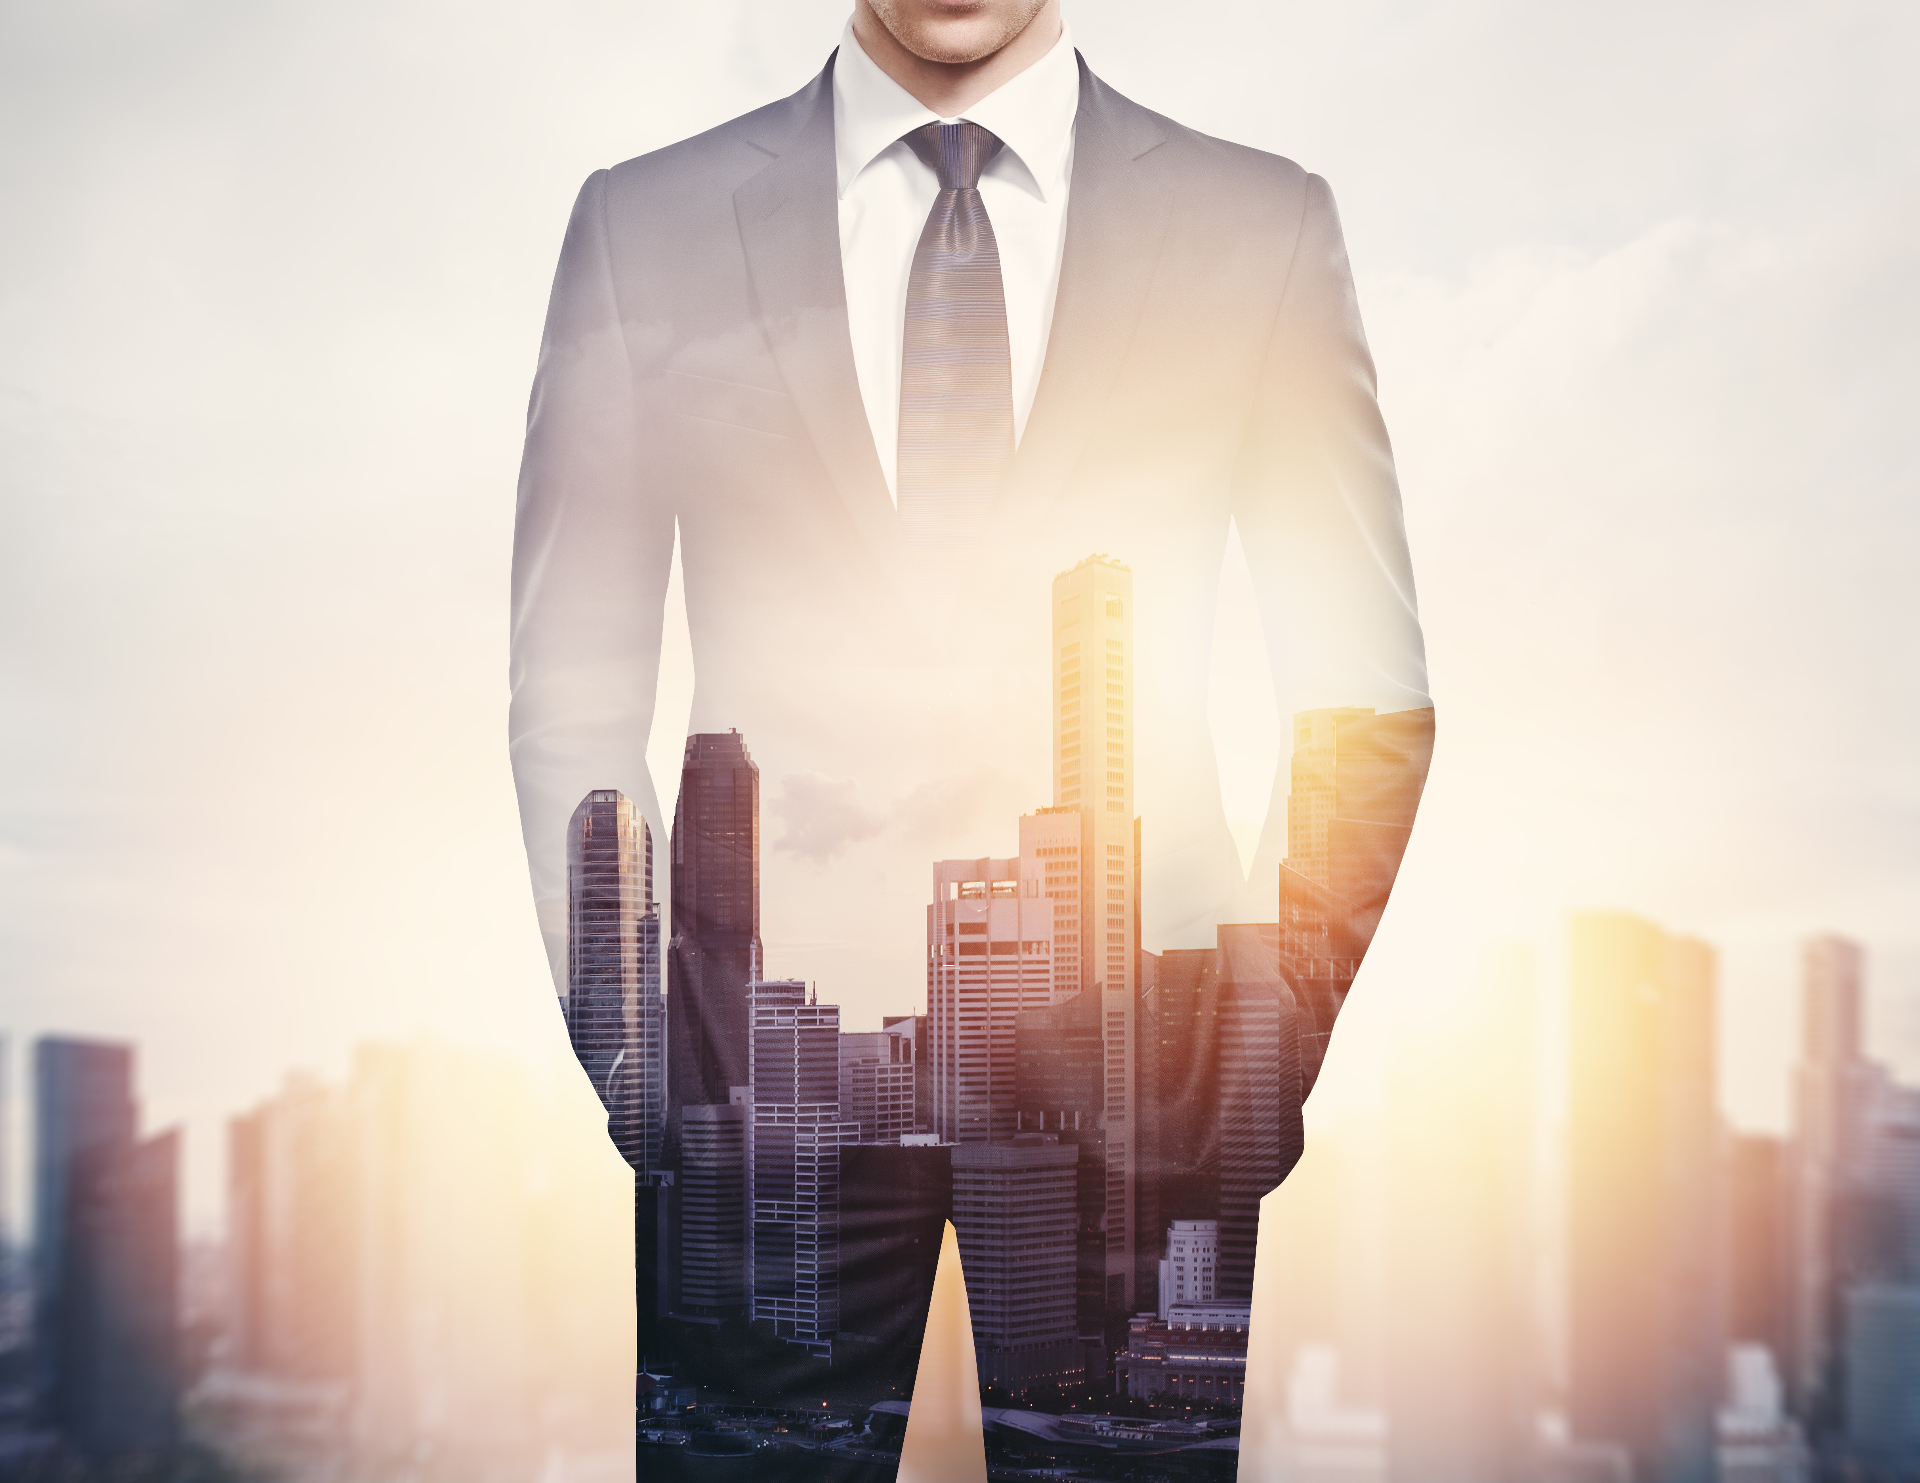 bigstock-double-exposure-of-businessman-67463152_edited.jpg